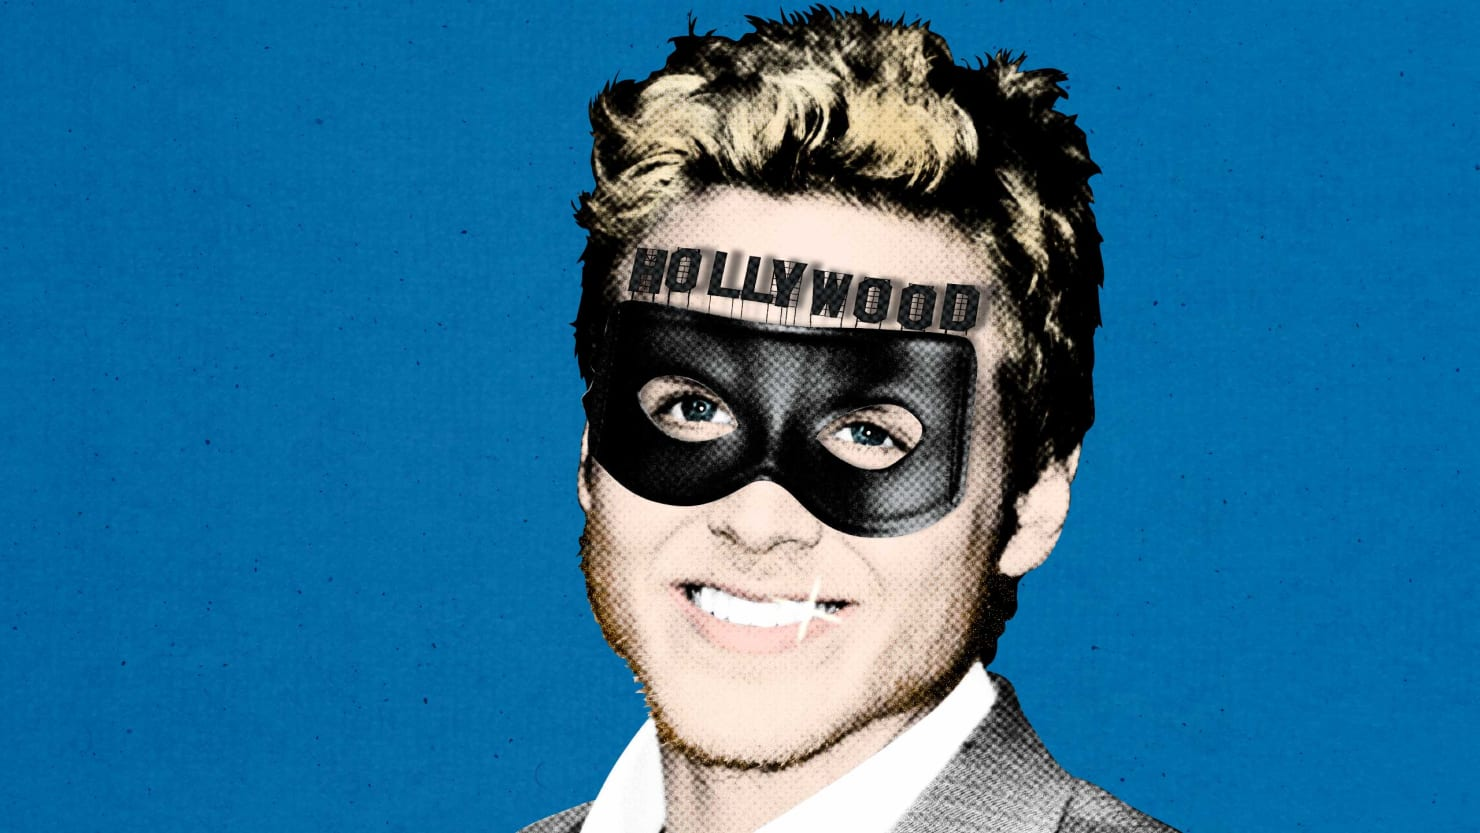 How Spencer Pratt Cast Himself As A Villain And We Bought It